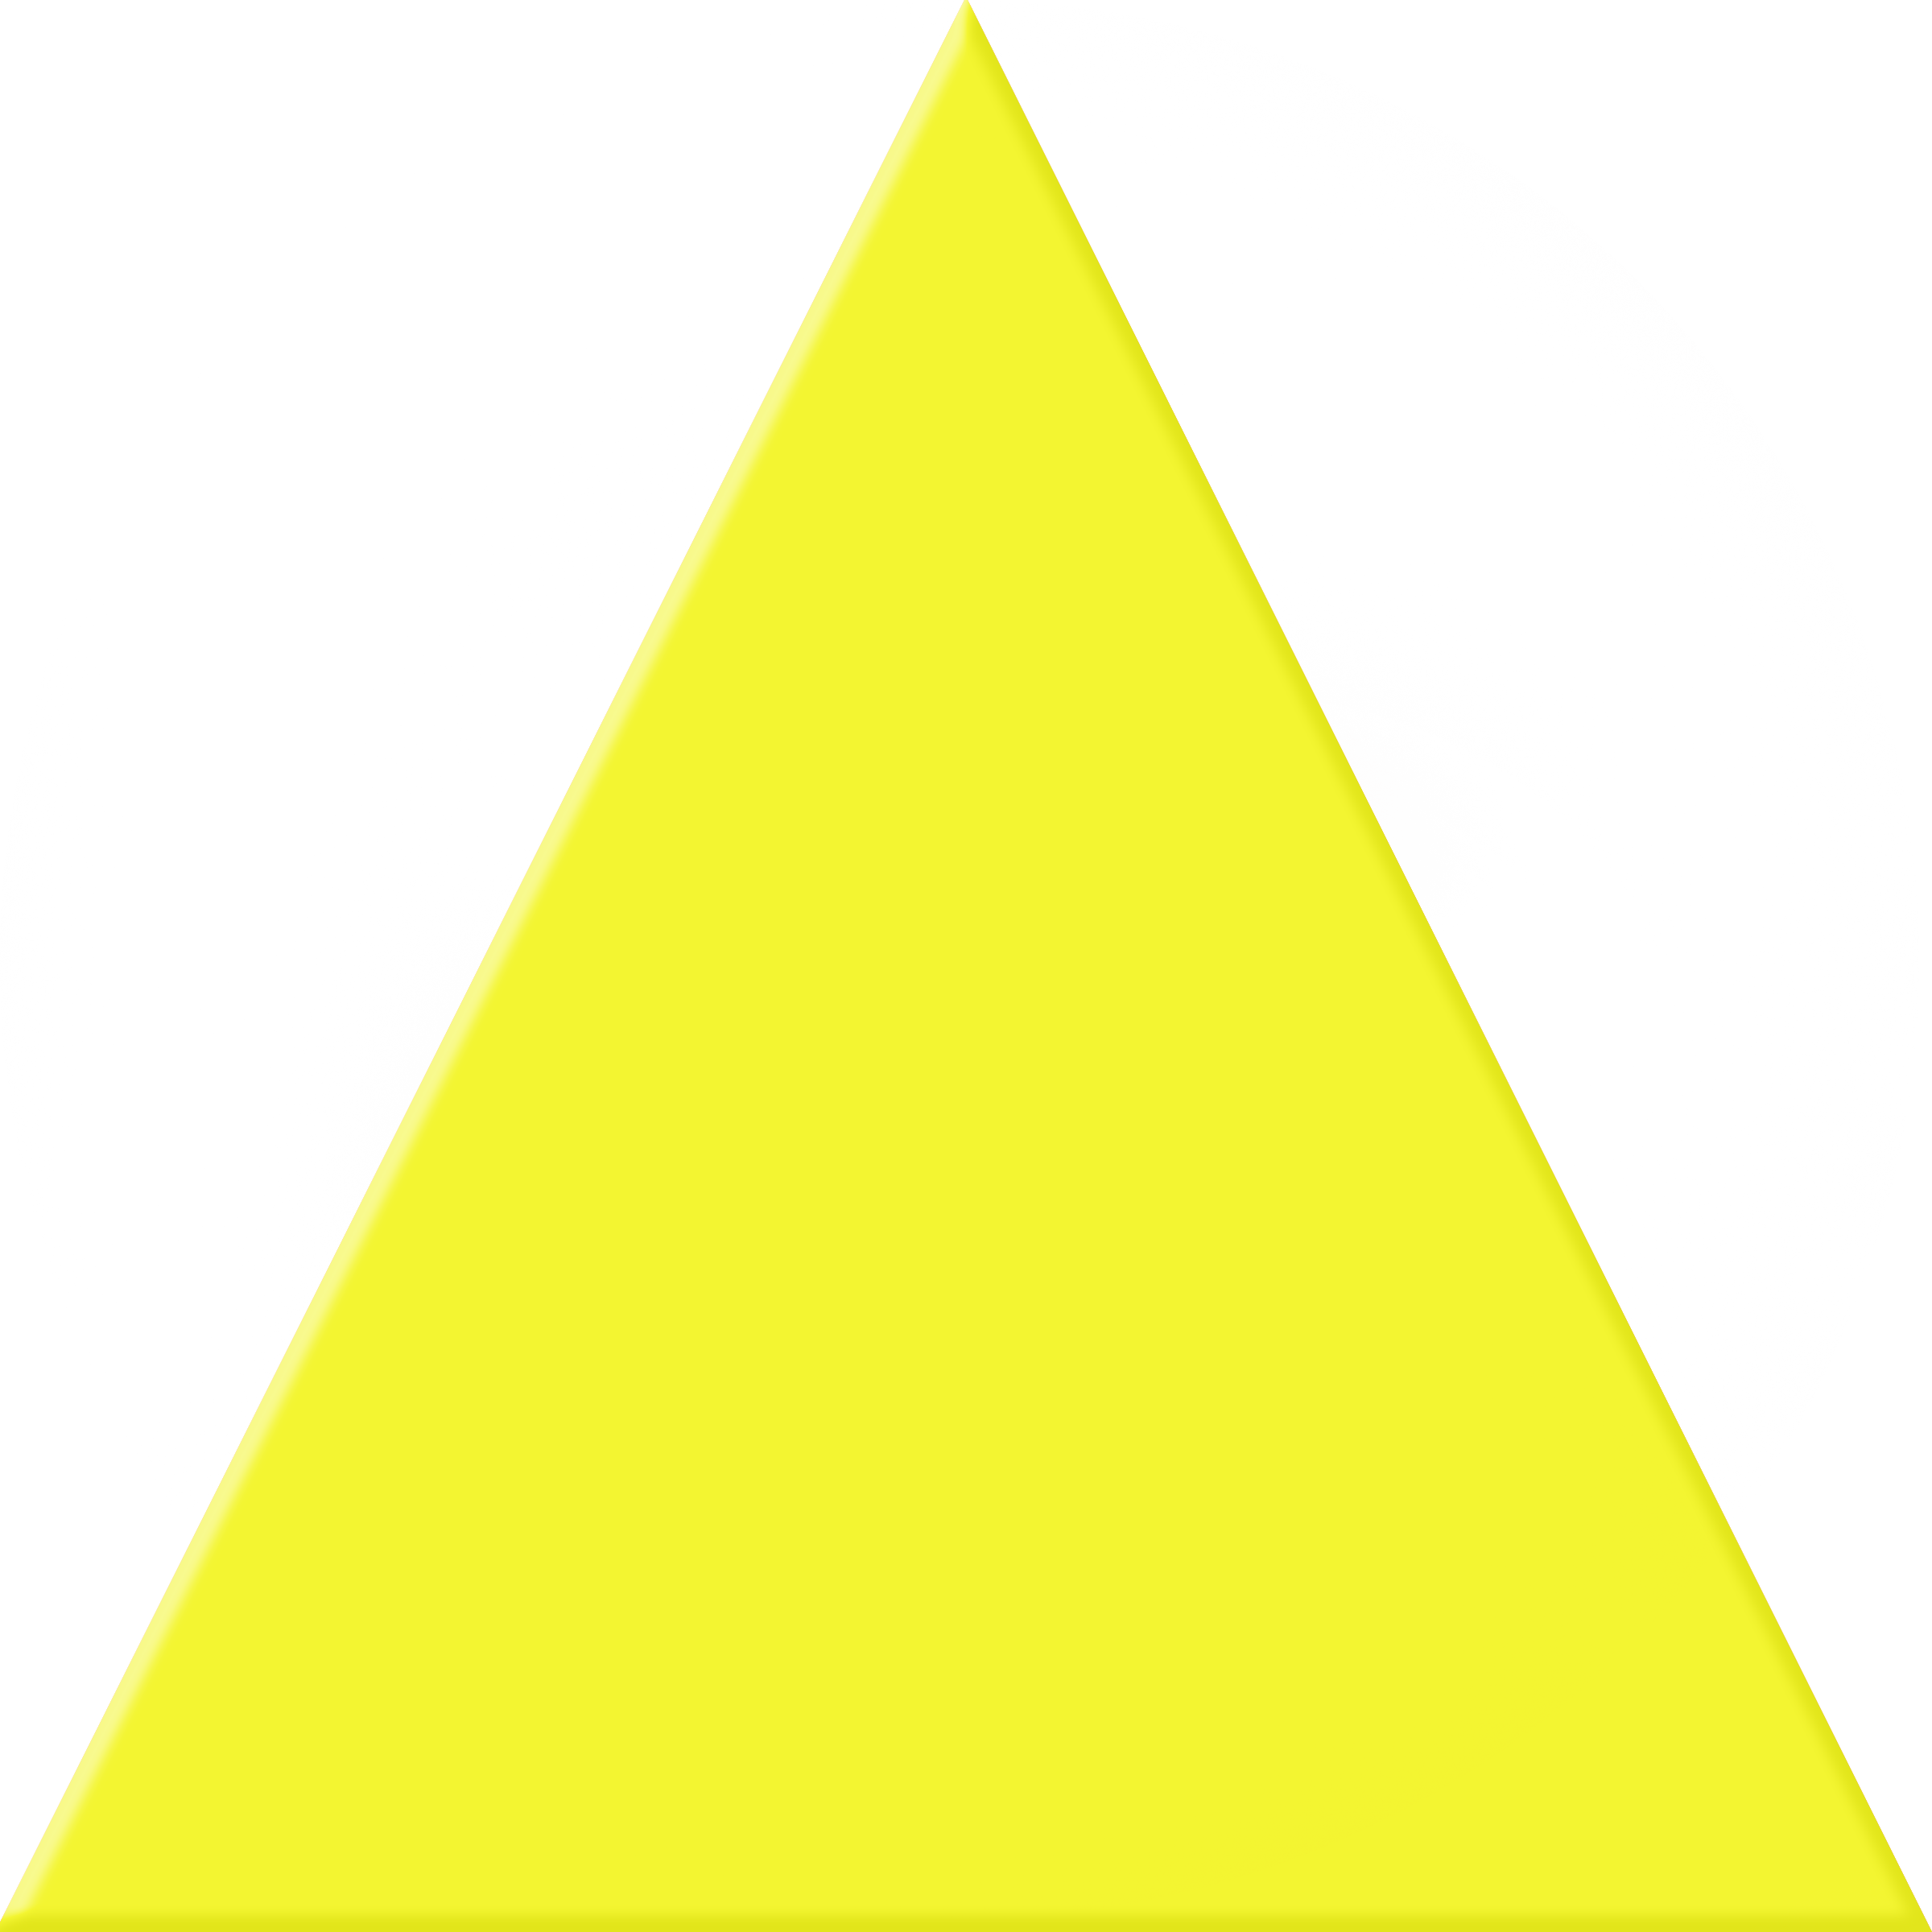 Yellow Triangle Image Transparent Png image #42405